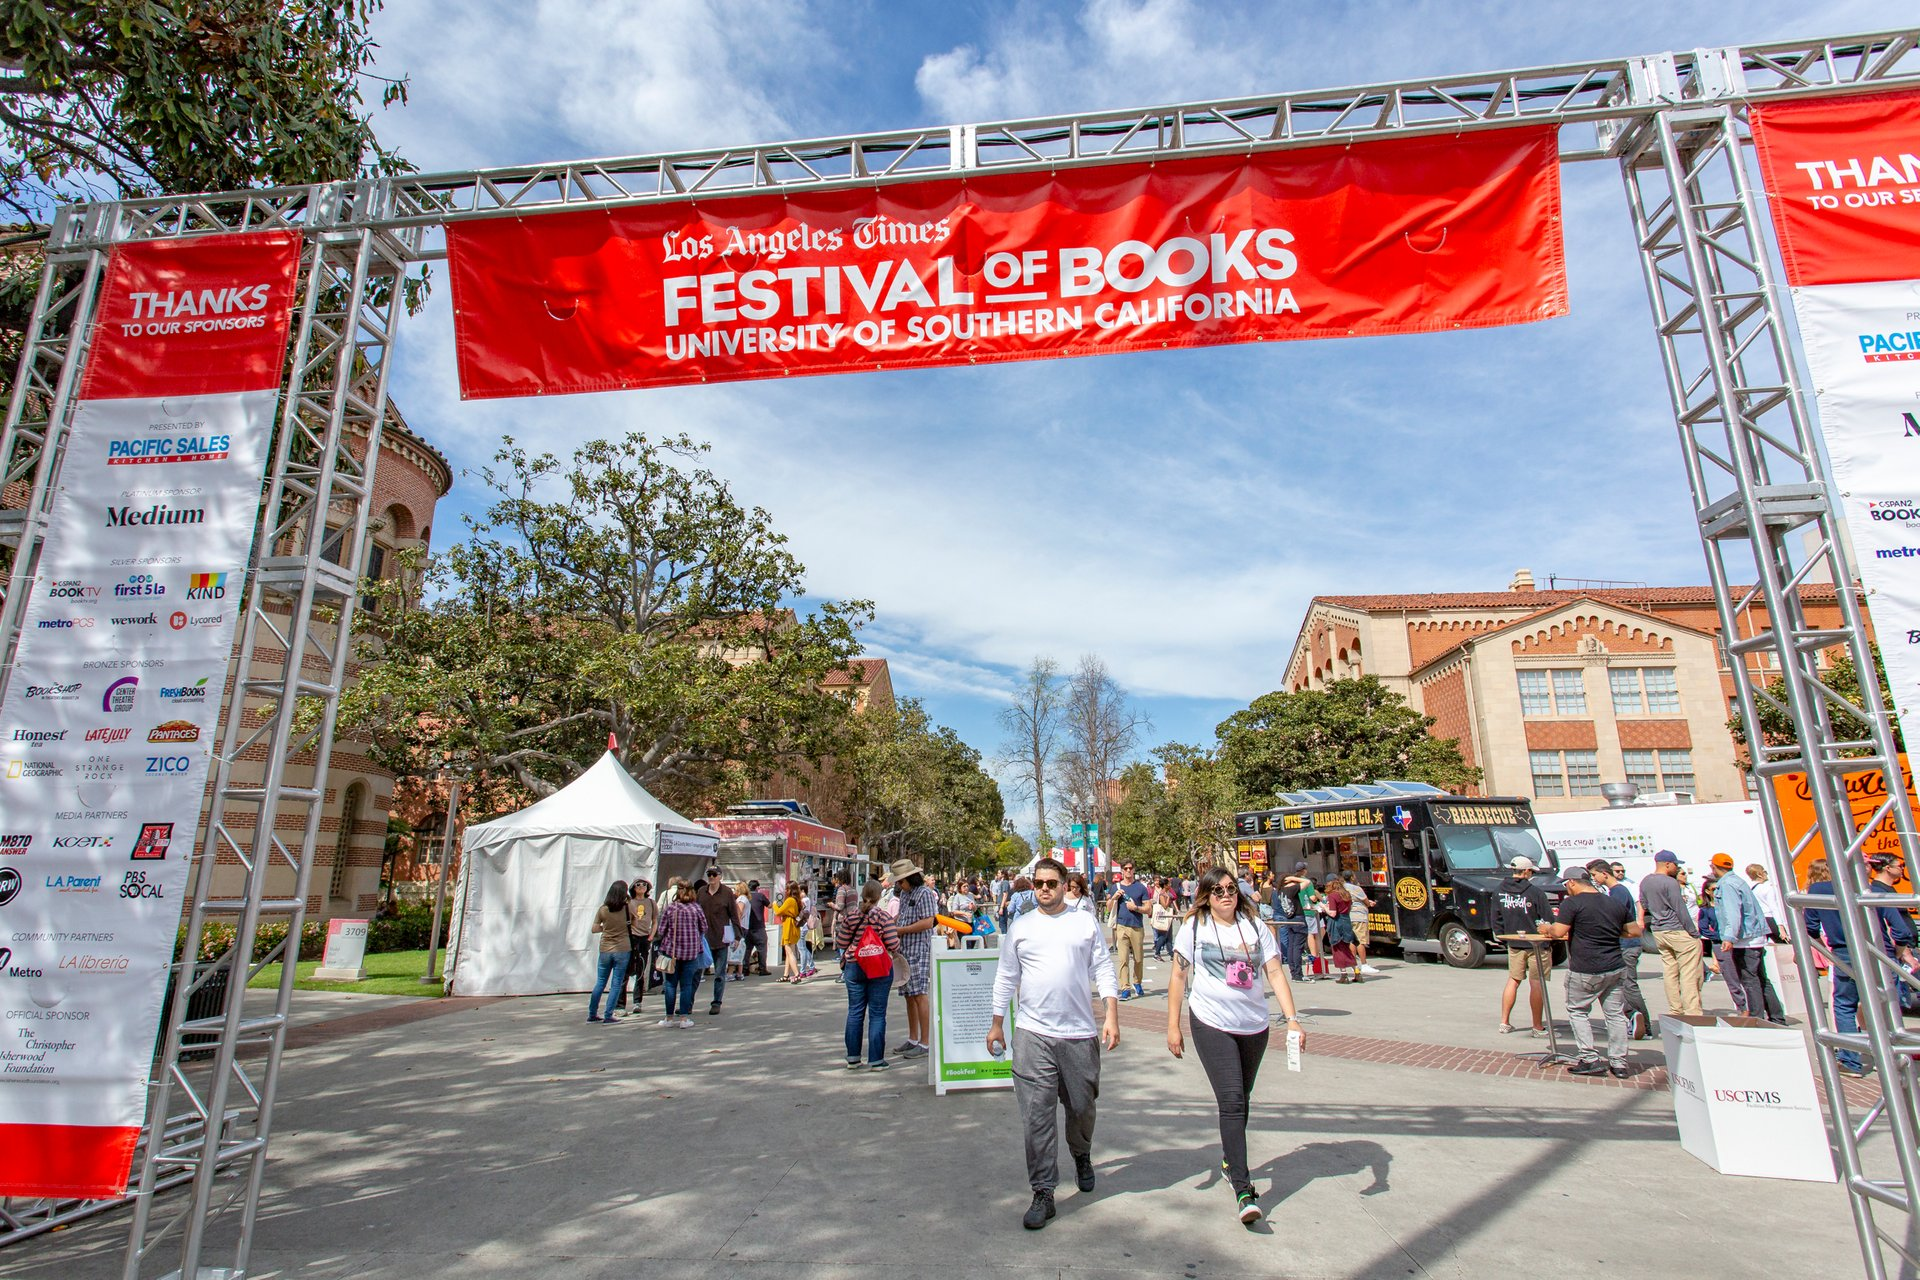 Los Angeles Times Festival of Books in Los Angeles 2020 - Best Time